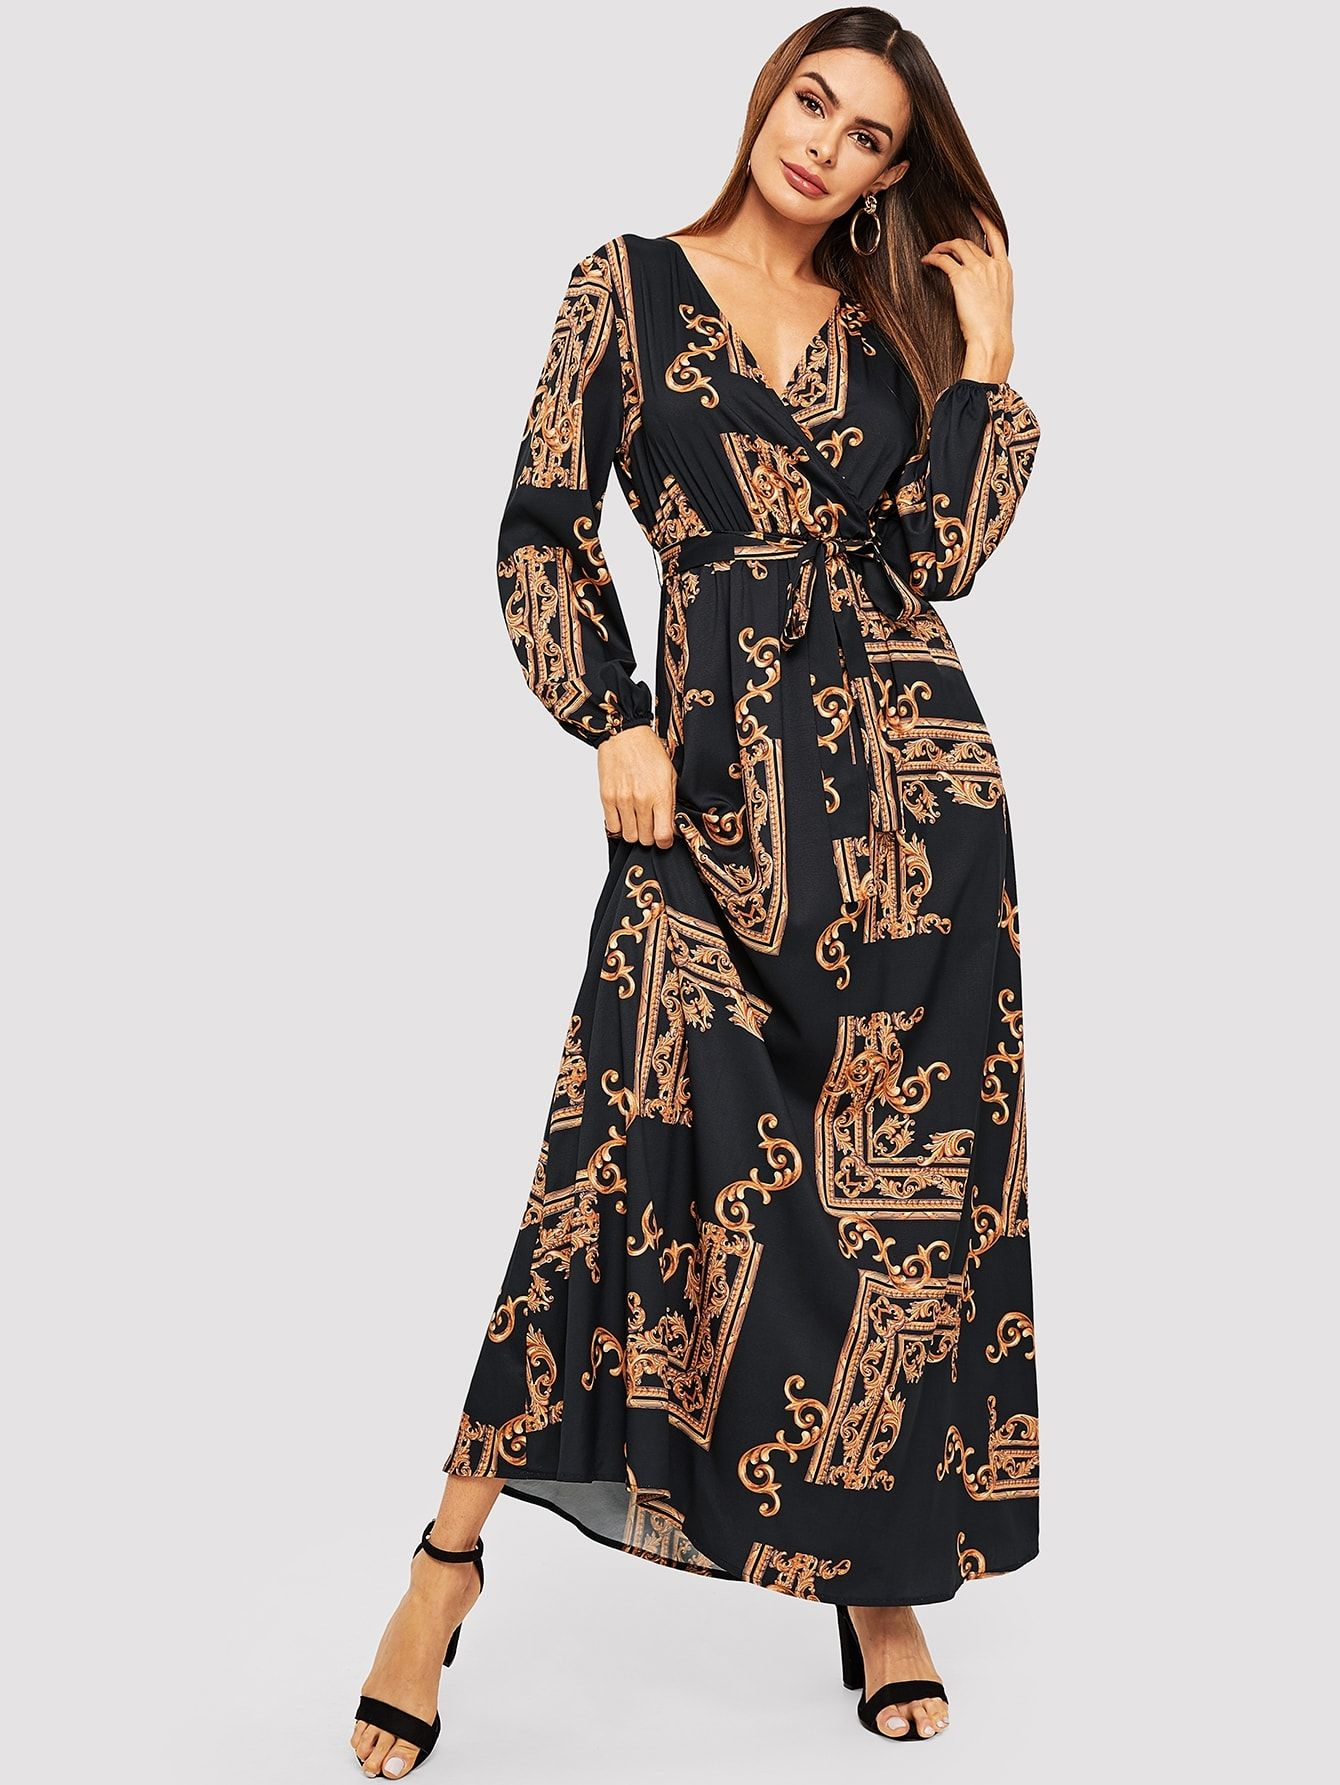 86013d404b7 Casual A Line Fit and Flare V Neck Long Sleeve Natural Multicolor Maxi  Length Scarf Print Belted Maxi Wrap Dress